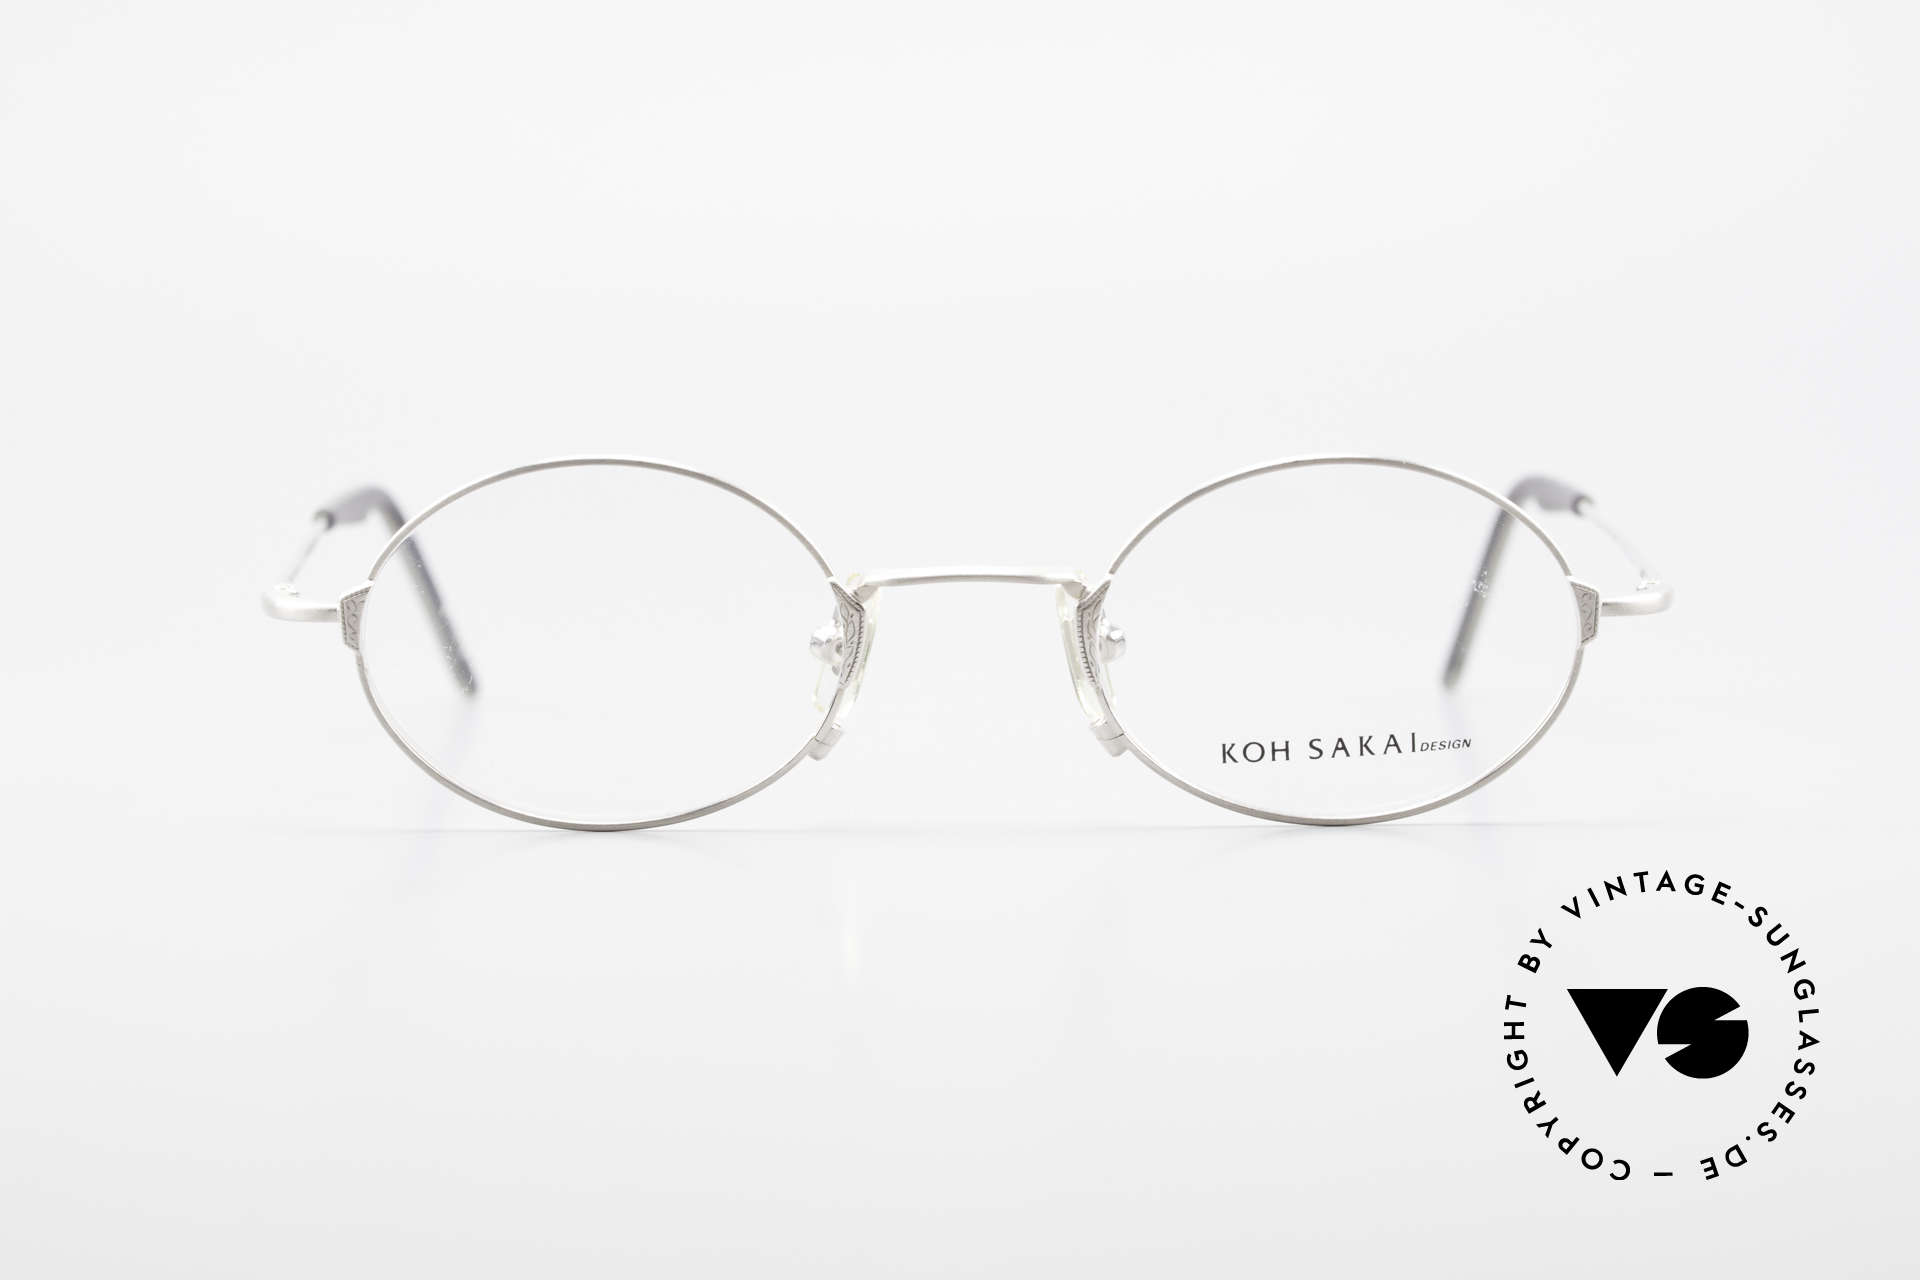 Koh Sakai KS9711 Small Oval Glasses Clip On, Size: small, Made for Men and Women